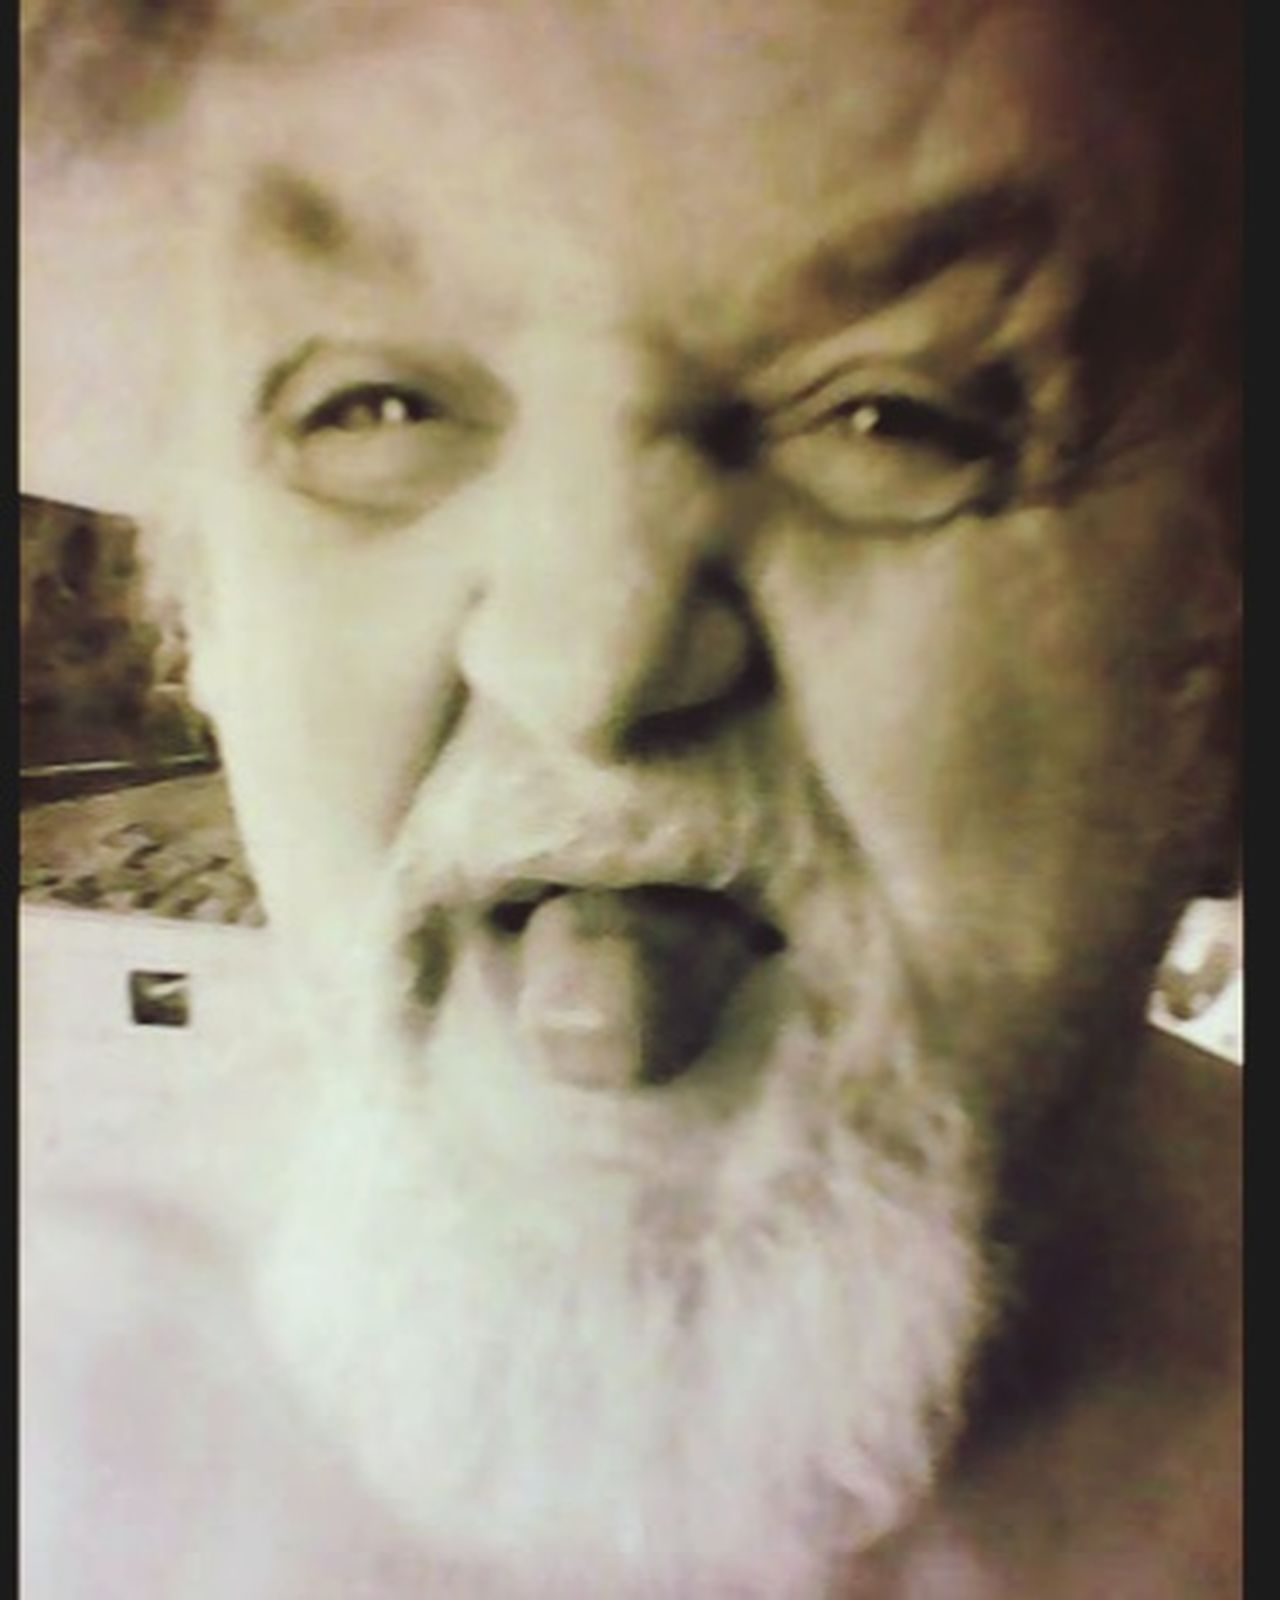 silly Grandpa Having Fun ♥ Silly Face Grandpa Having A Good Time Live, Love, Laugh You Make Me Smile Faces FaceTime Blackandwhite Photography Being Silly Acting Silly (: Love ♥